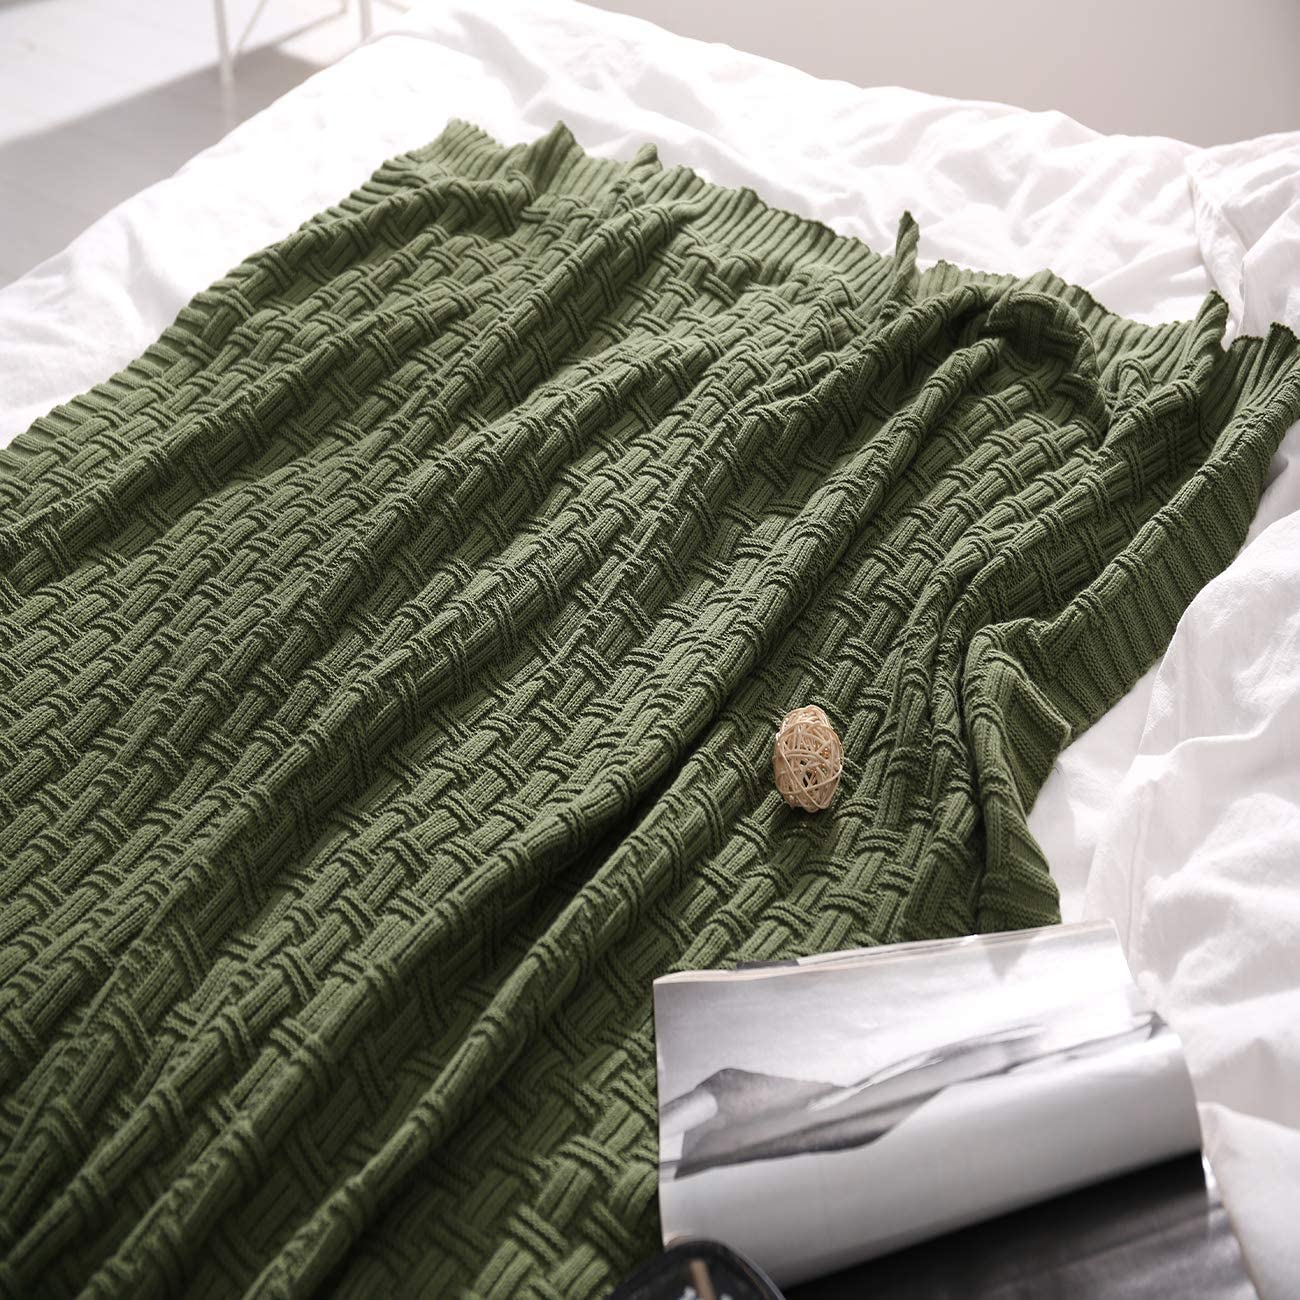 Treely 100% Cotton Knitted Throw Blanket Couch Cover Blanket(50 x 60 Inches,Green Forest)